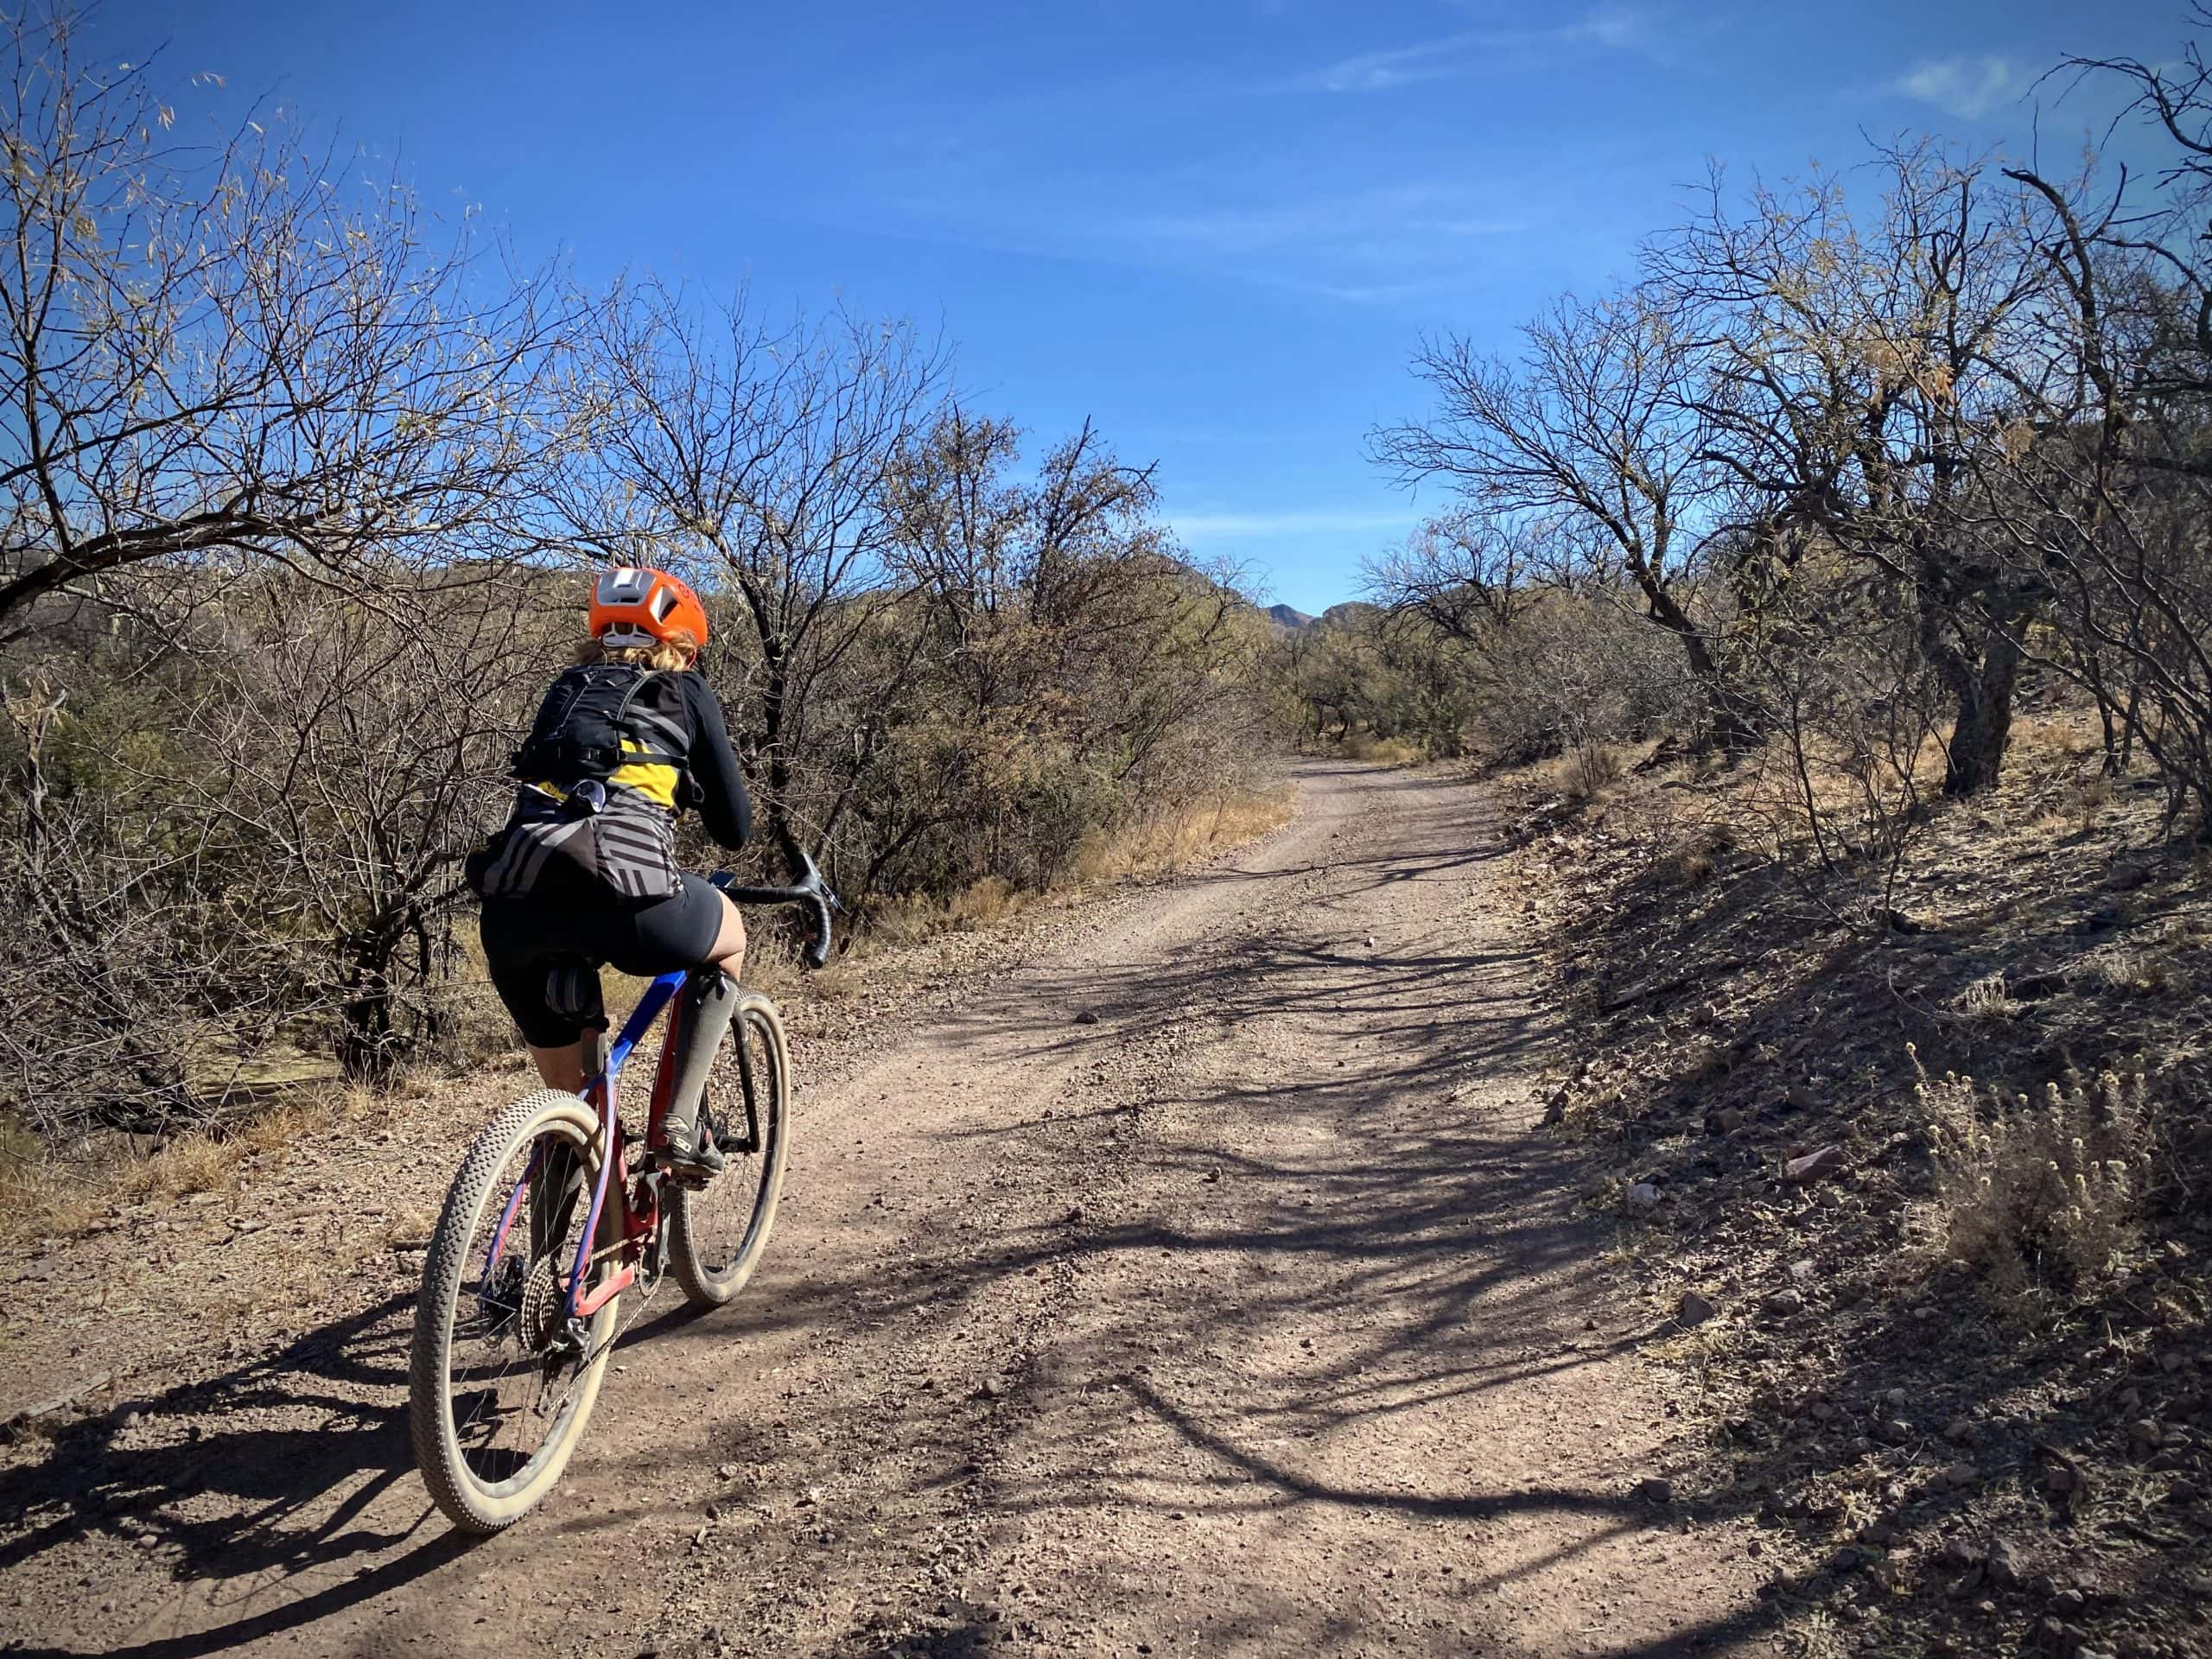 Gravel cyclist riding on dirt road with Mesquite trees.